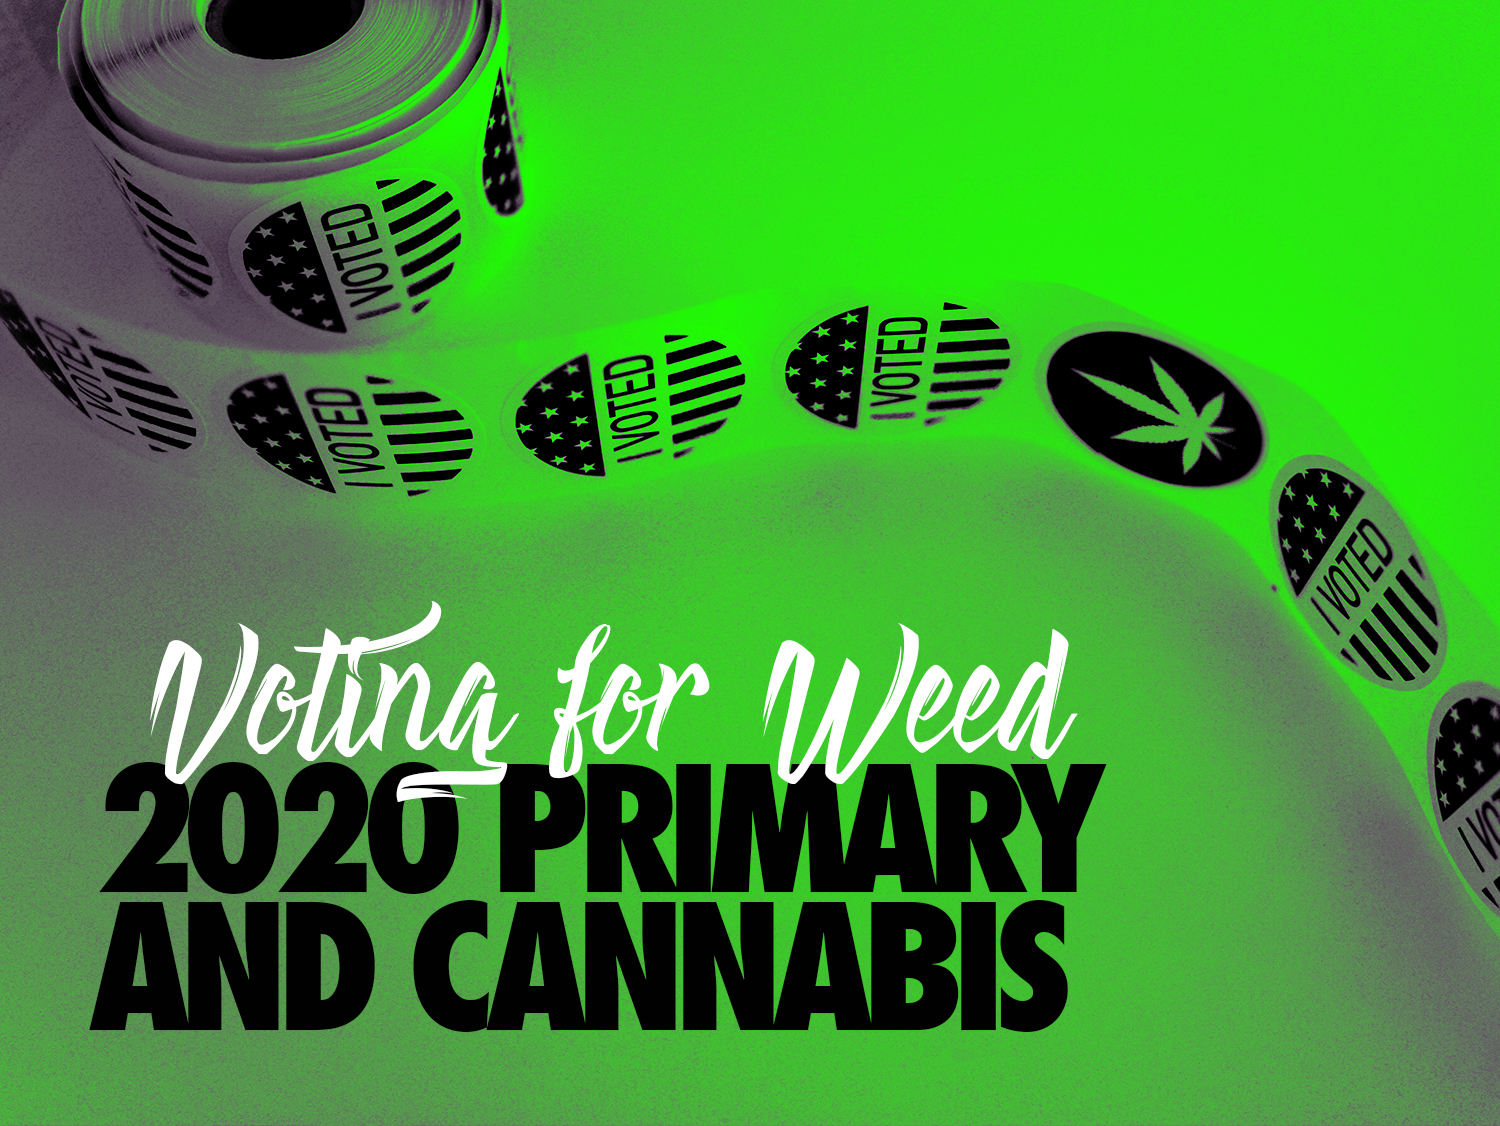 Voting For Weed: The 2020 Primary and Cannabis